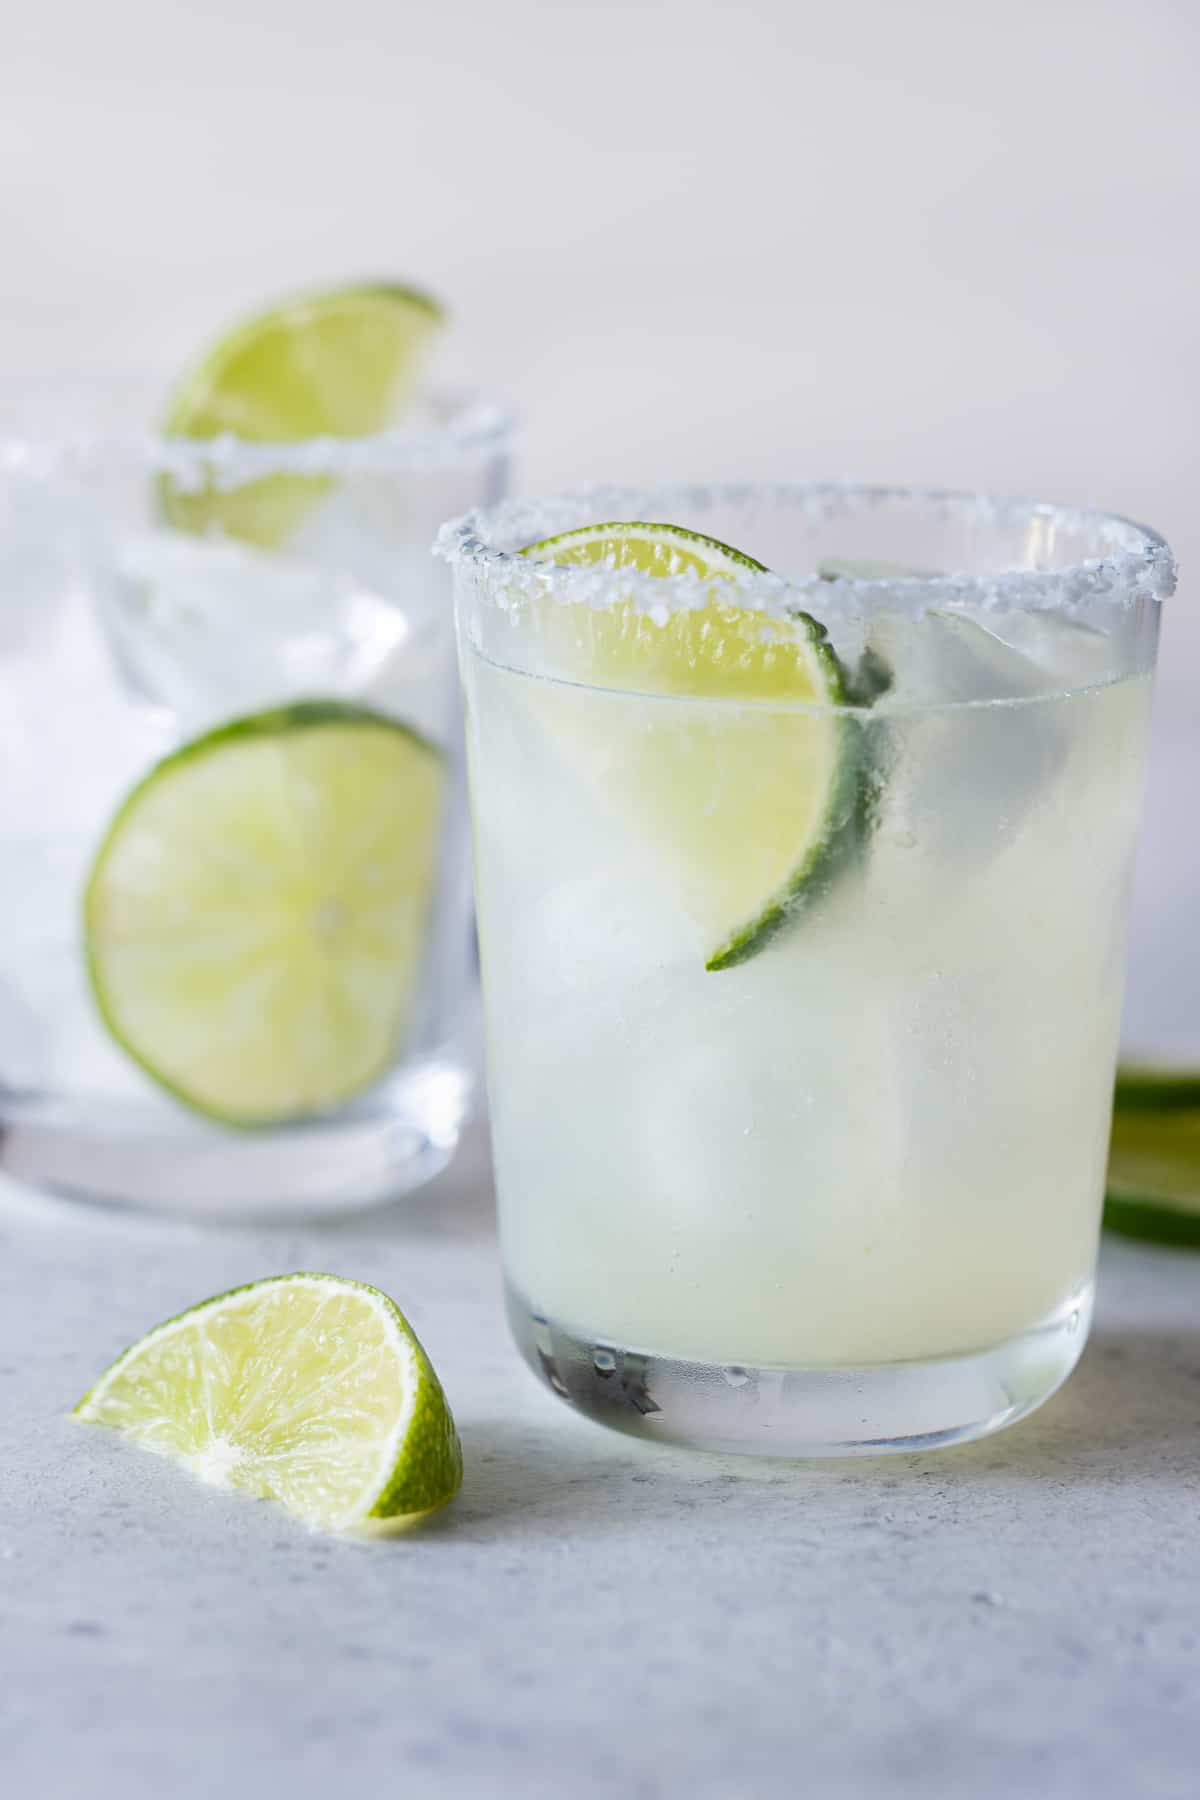 2 low ball glasses filled with ice and margaritas with a salted rim